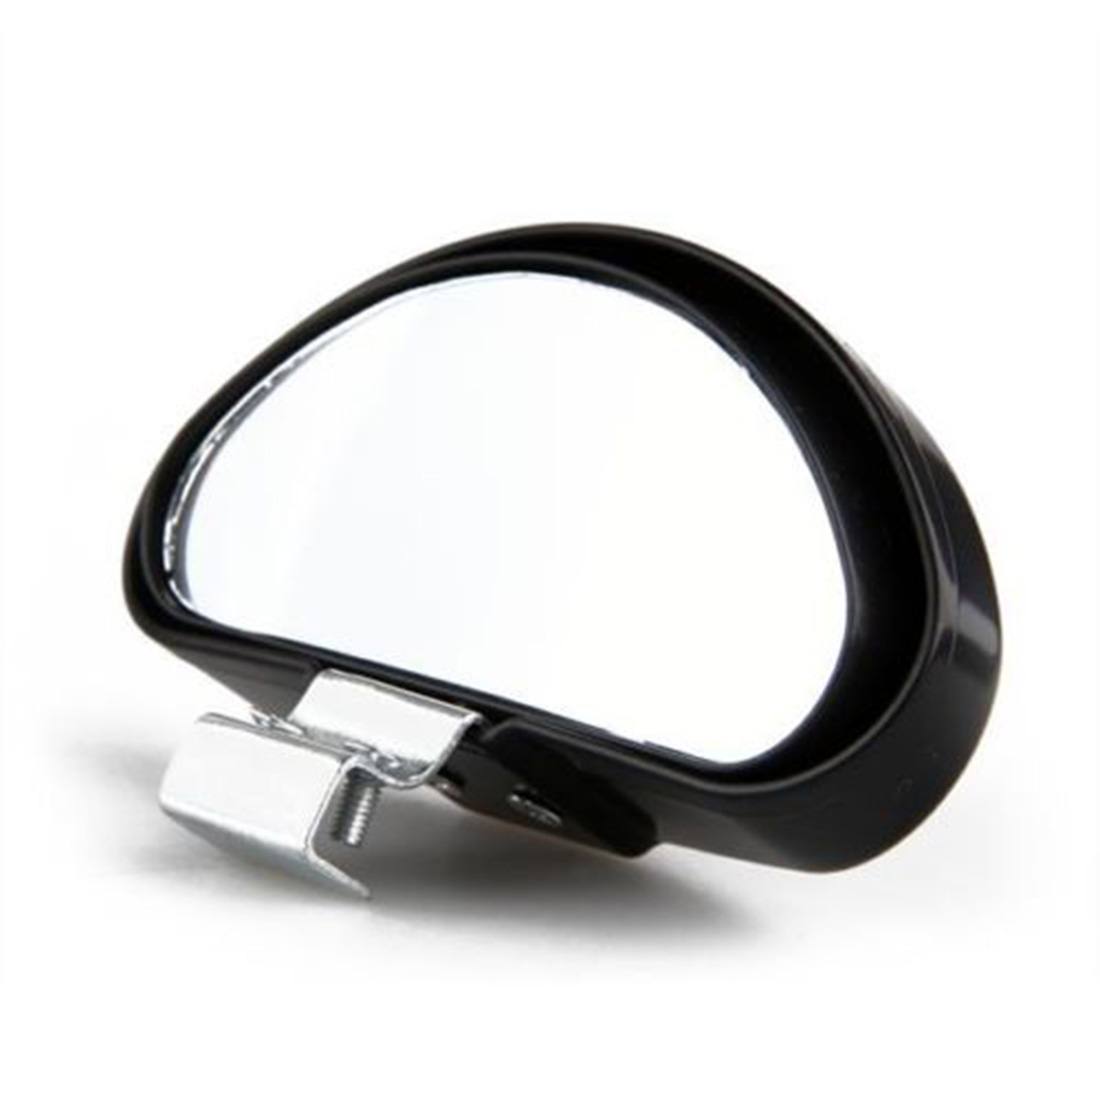 Hot Sale Pvc Car Mirror Adjustable Wide Angle View Blind Spot Back Rear View Mirror Brand Us72